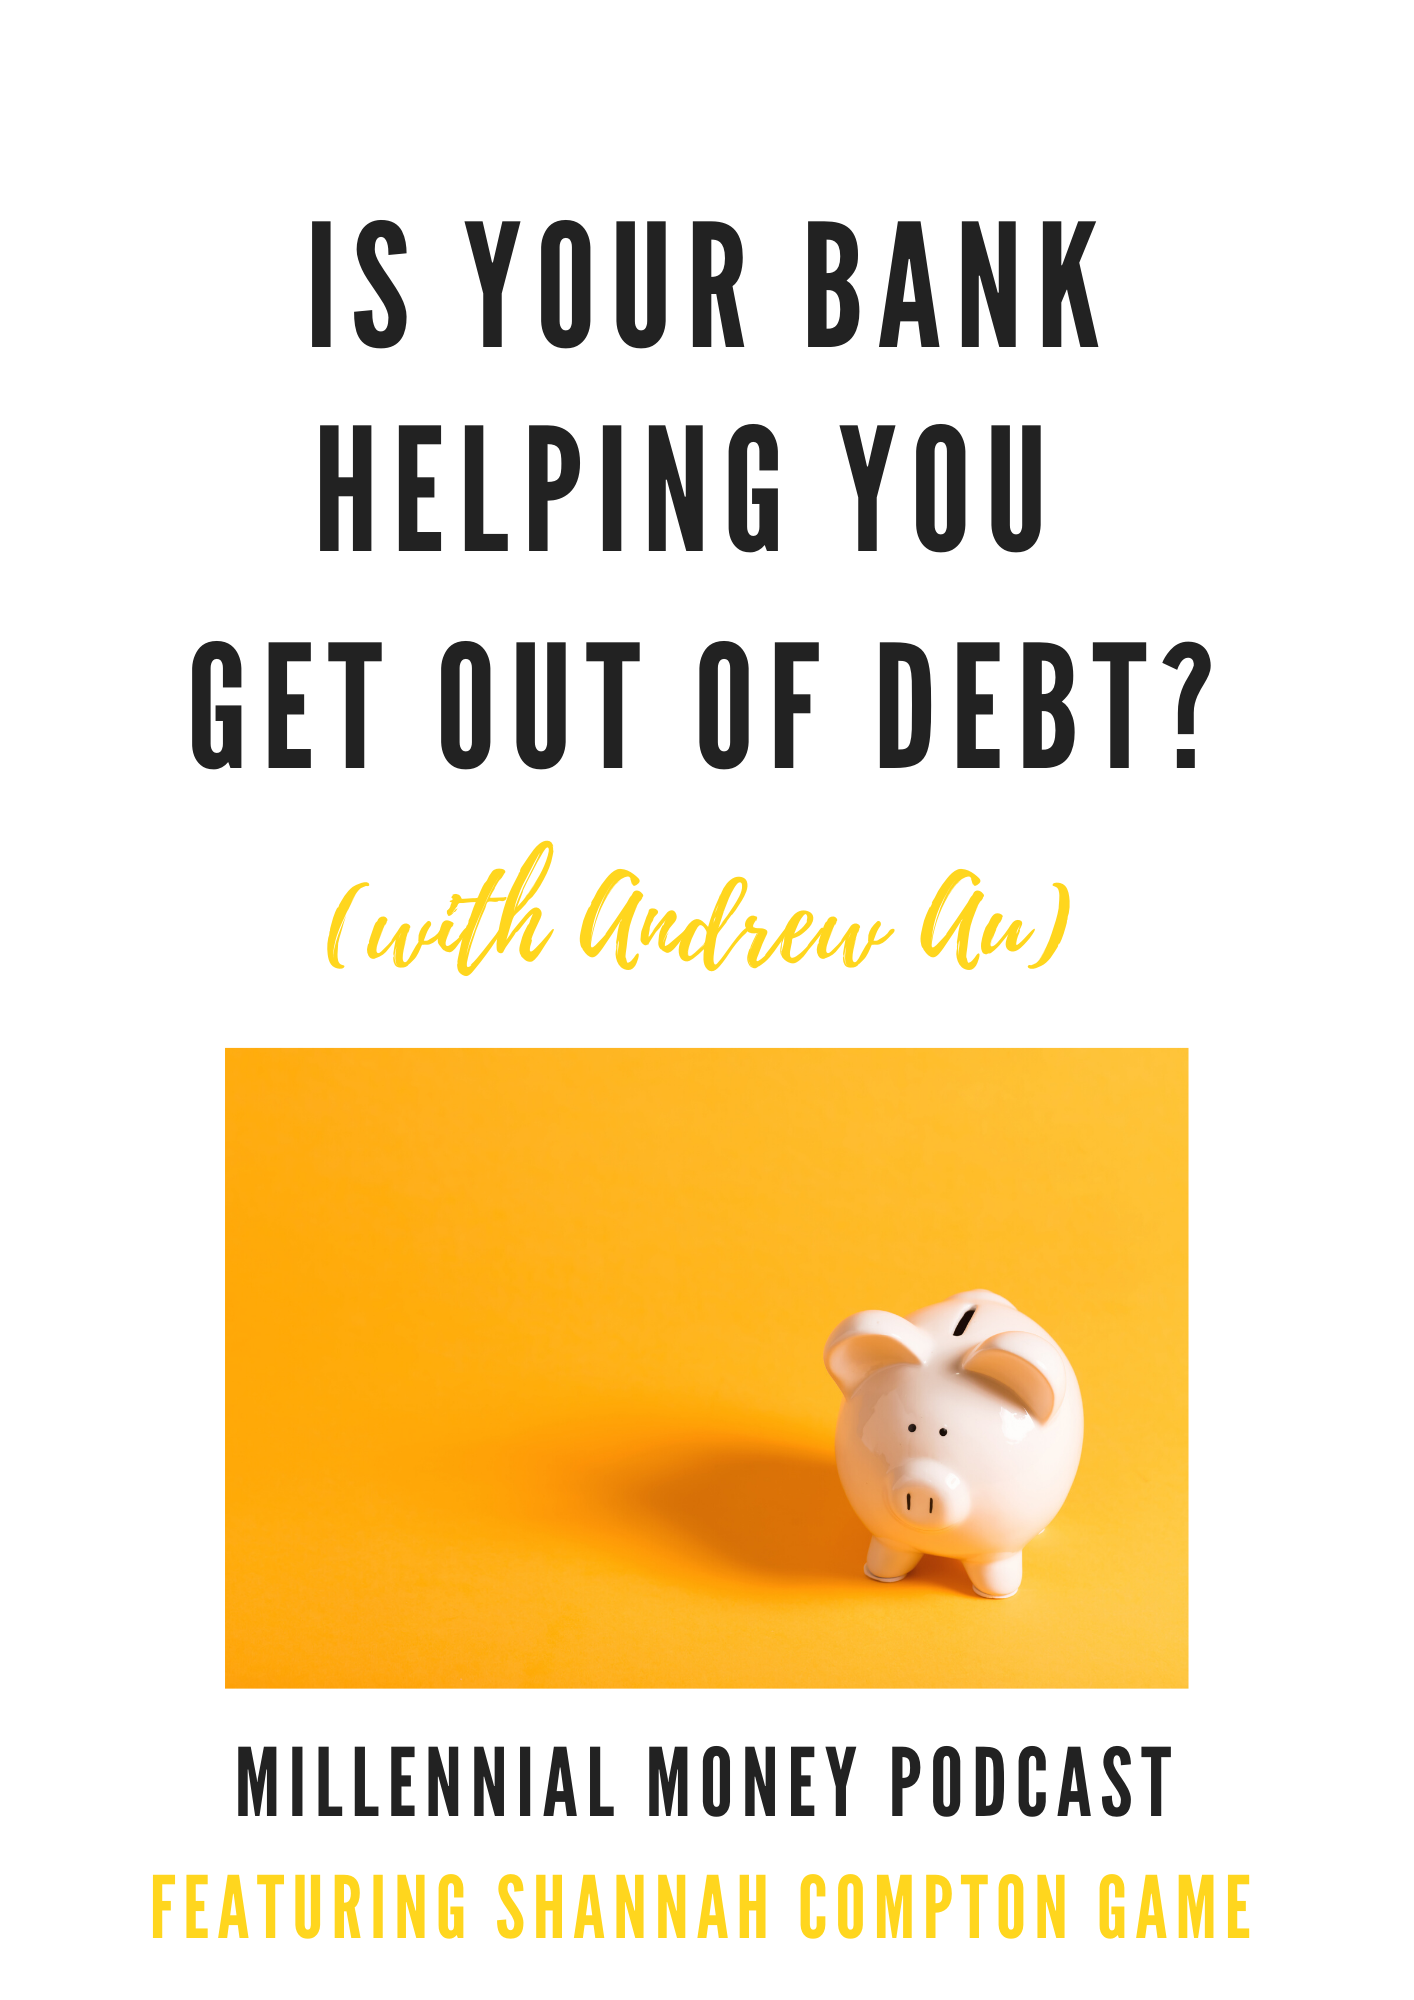 Is Your Bank Helping You Get Out of Debt